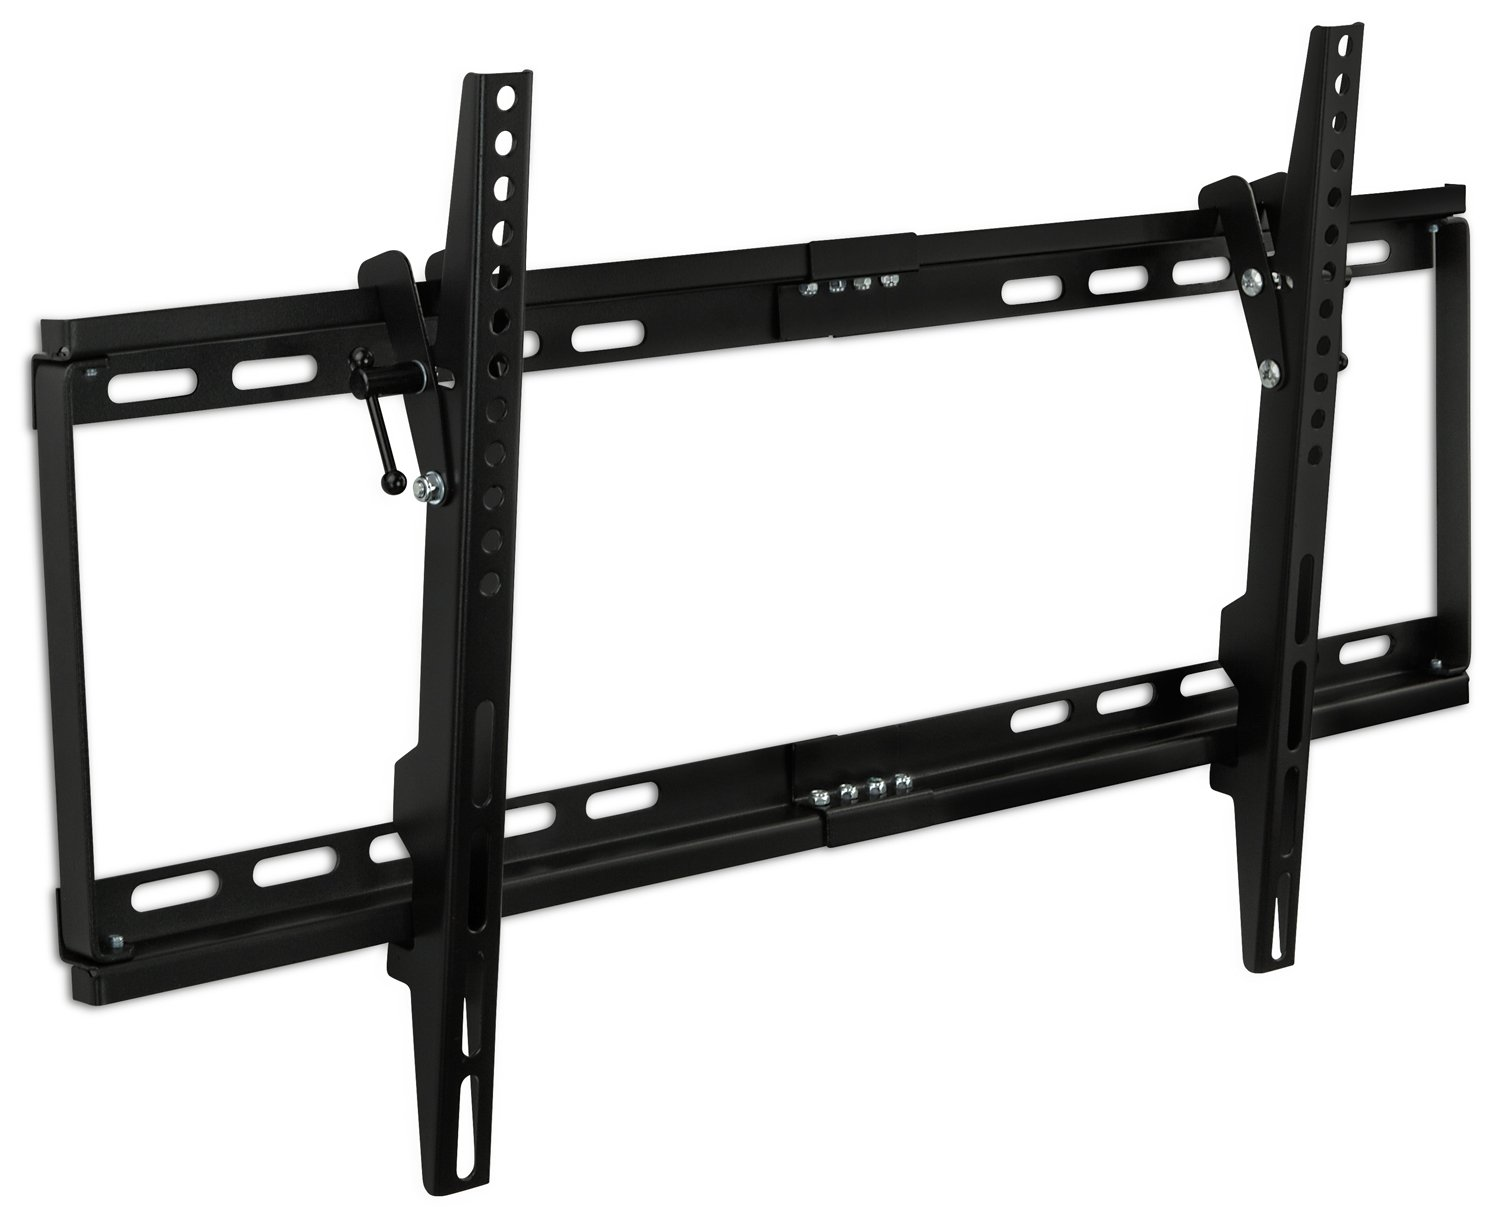 Mount-It! MI-1121M Slim Tilt TV Wall Mount Bracket for LED LCD Plasma Flat Screen Panels for 32' to 65' (Many from 20-75') up to VESA 600 x 400 and 130 lbs Low Profile. 0-15 Degree Forward Adjustable Tilting Including 6 ft HDMI Cable and Leveling Bubble Fi